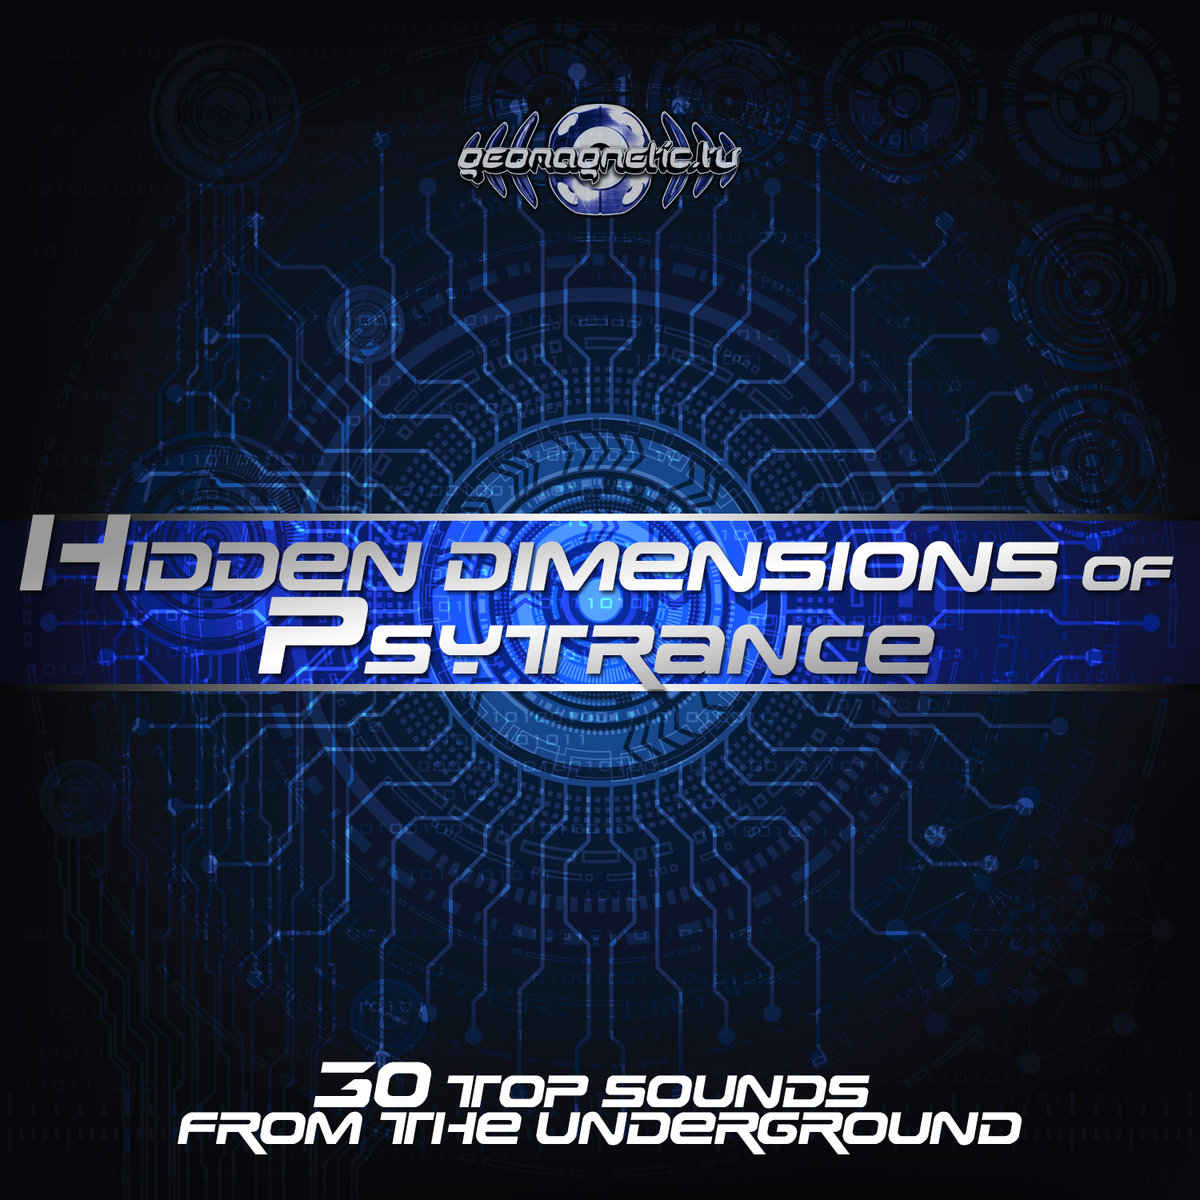 Labyr1nth - Mintaka @ 'Various Artists - Hidden Dimensions of Psytrance (30 Top Sounds From The Underground)' album (electronic, goa)